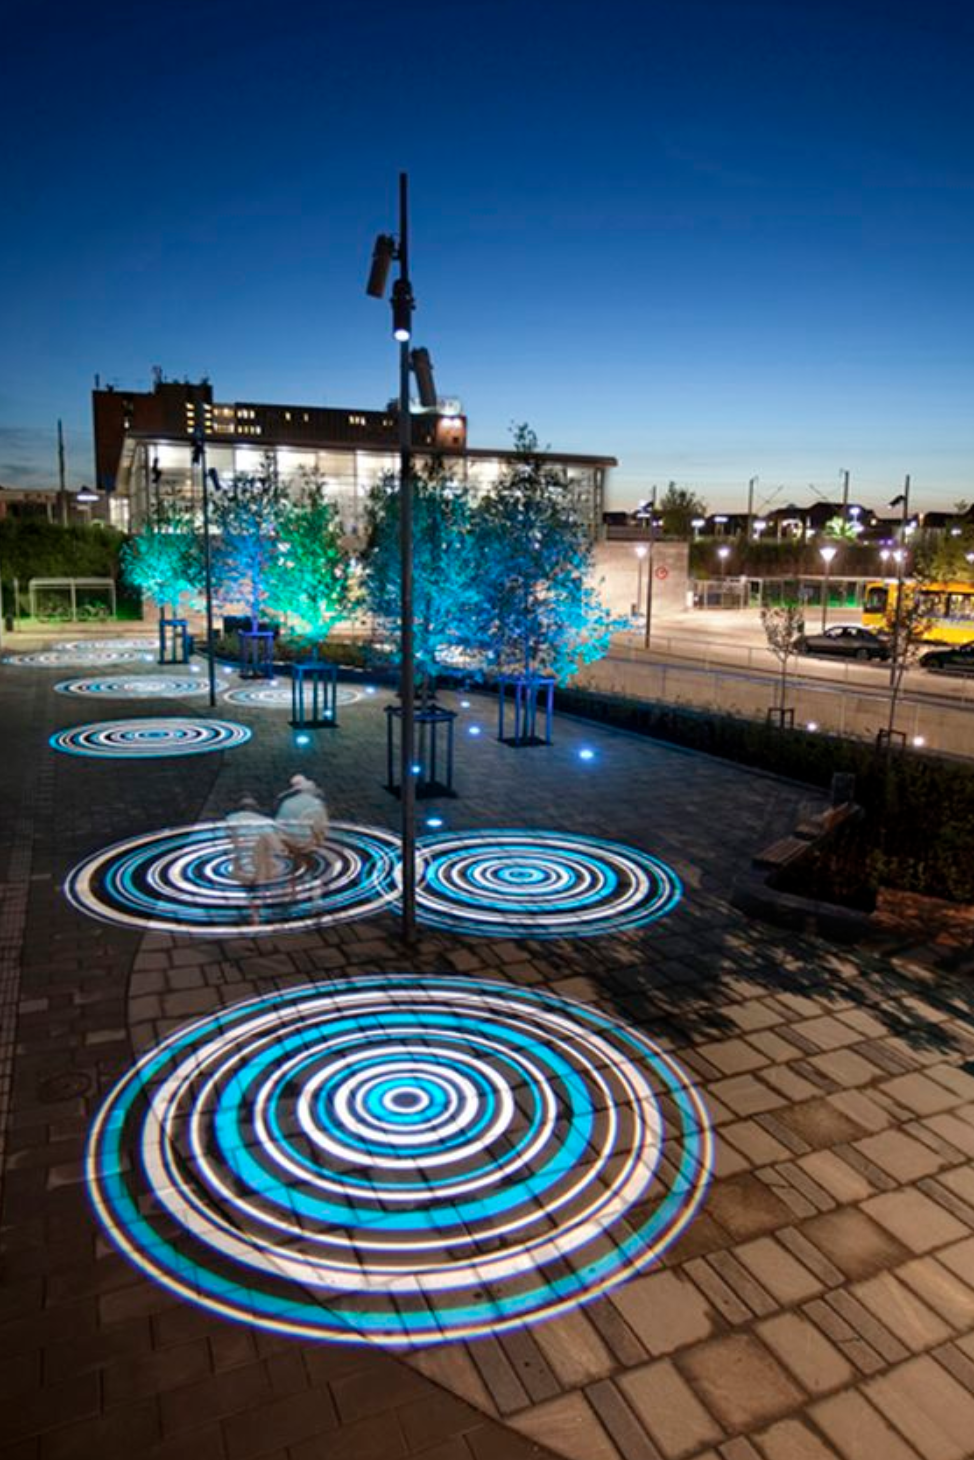 Pin By Drew Huang On Xian Mall Landscape Lighting Design